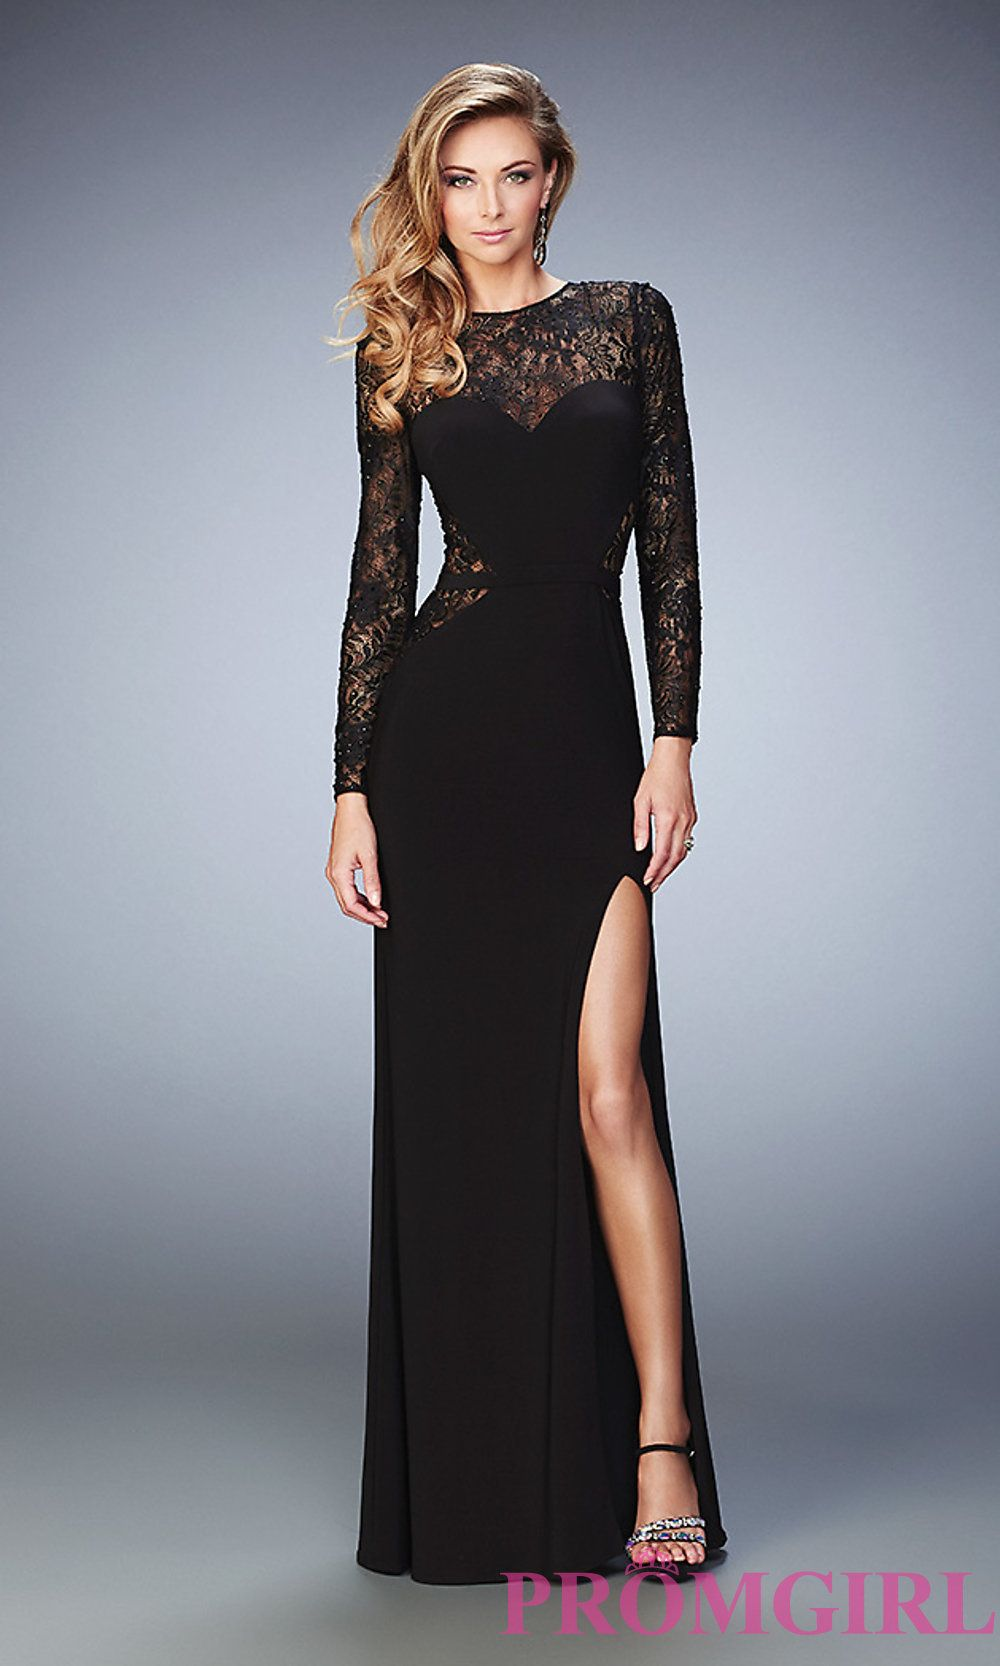 Prom Dresses Celebrity Dresses Sexy Evening Gowns Black Long Prom